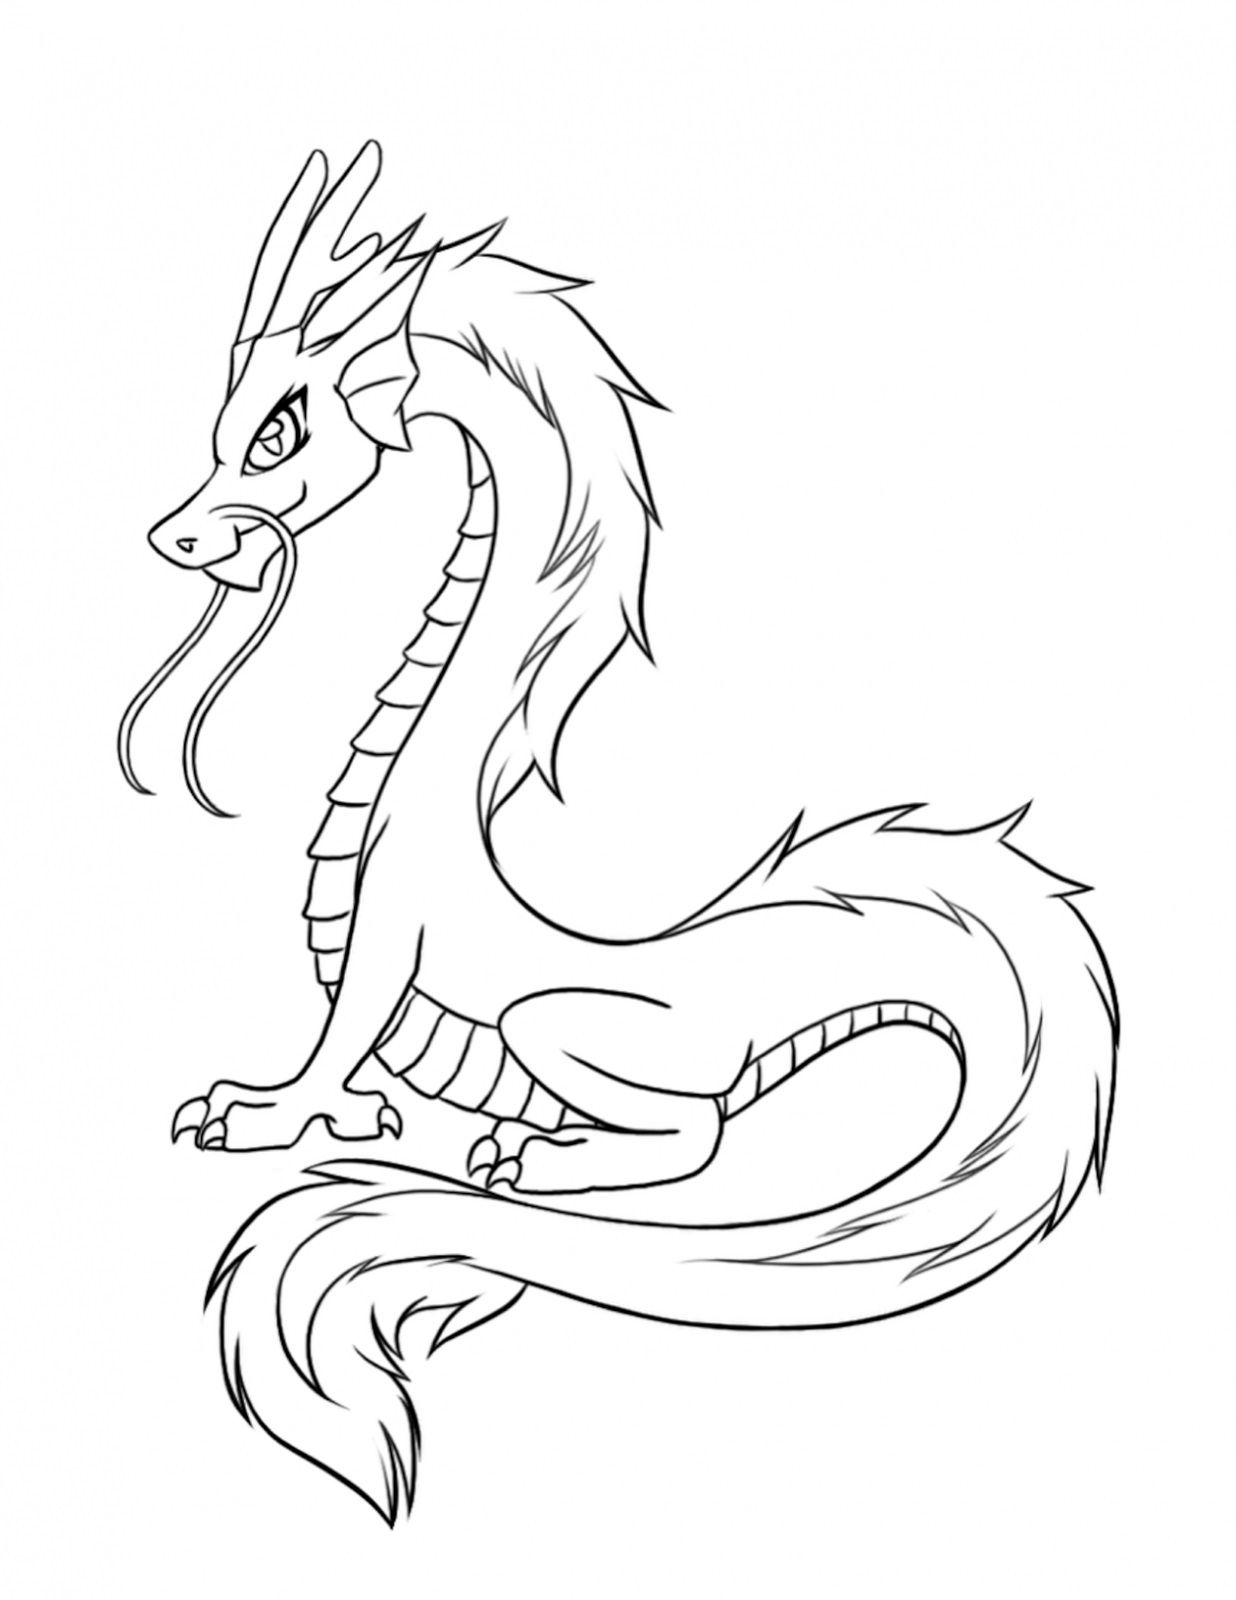 Dragon Coloring Pages With Images Dragon Coloring Page Dragon